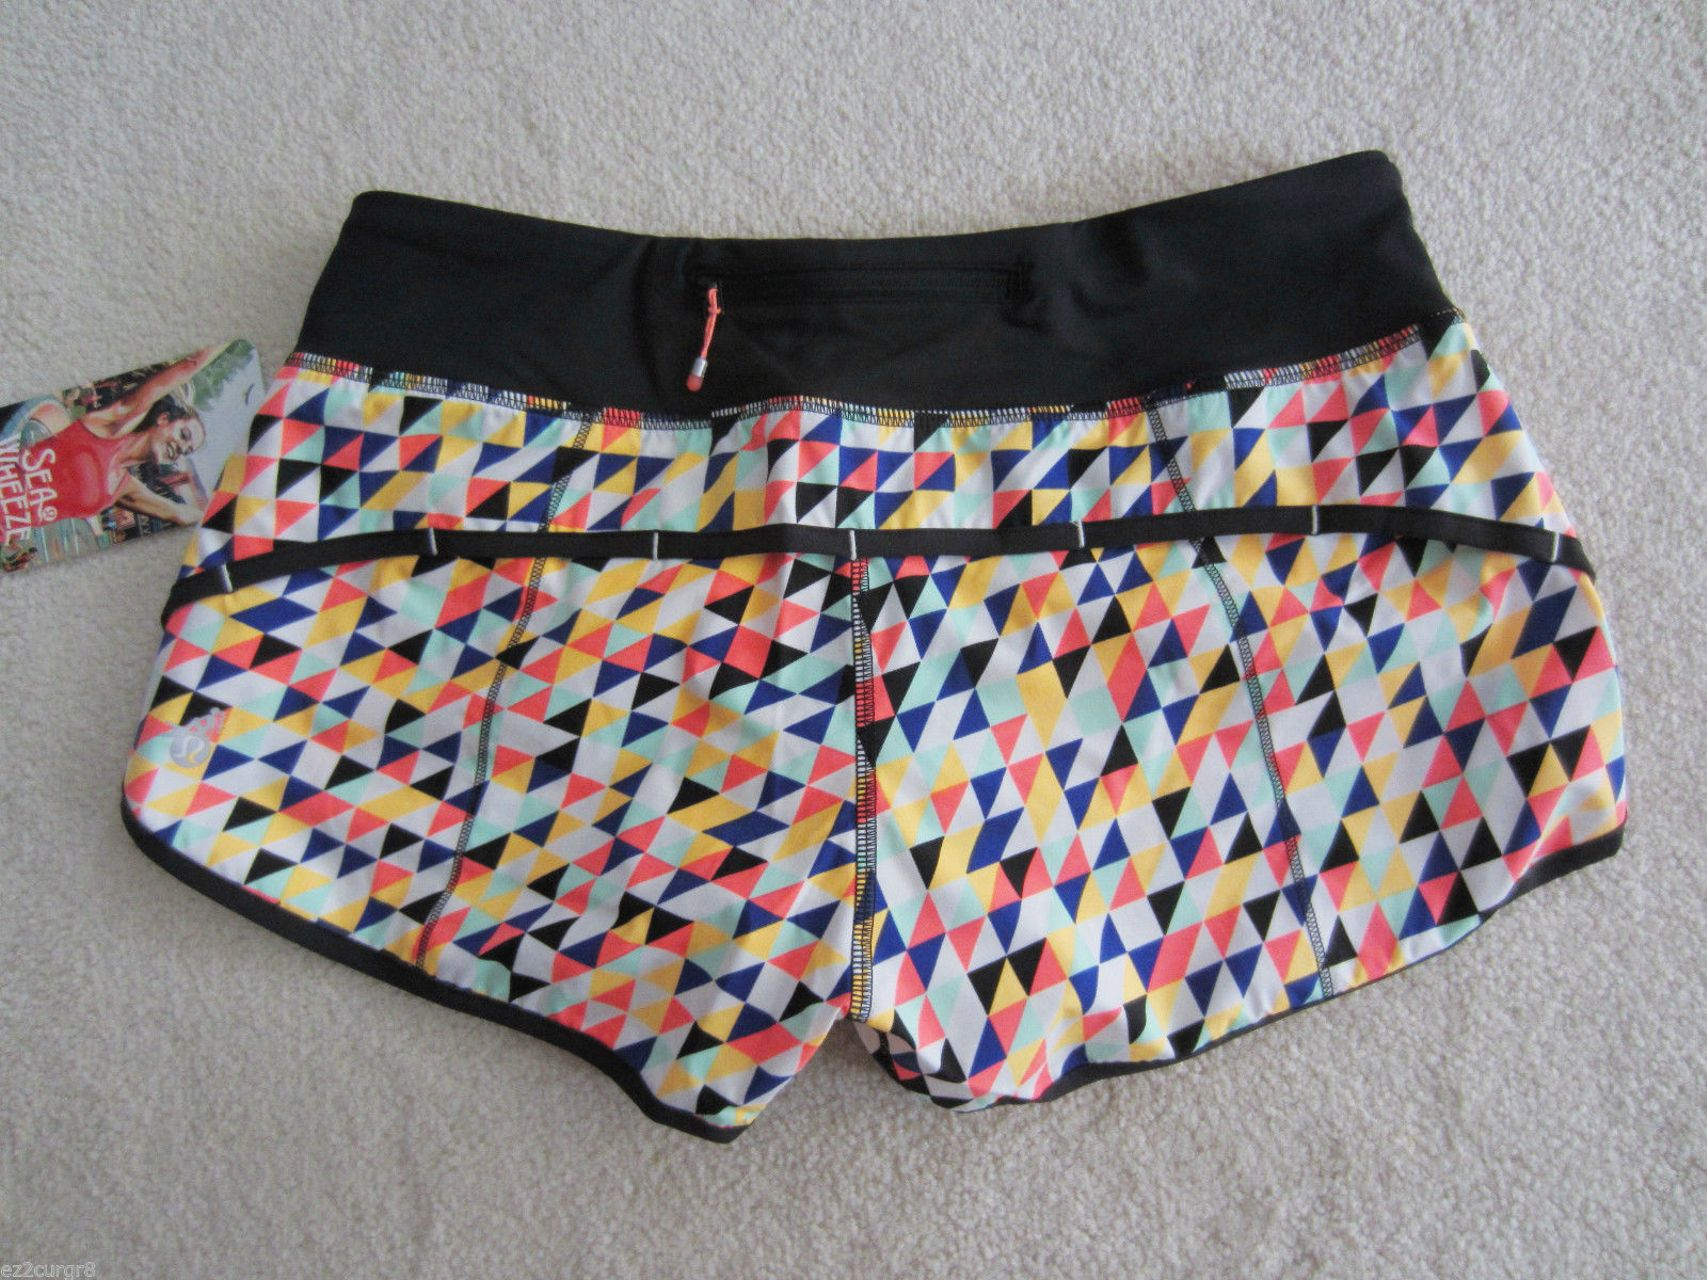 Lululemon Speed Short - 2013 Seawheeze - Tri Check Angel Wing/Black/Mountie Stripe Multi